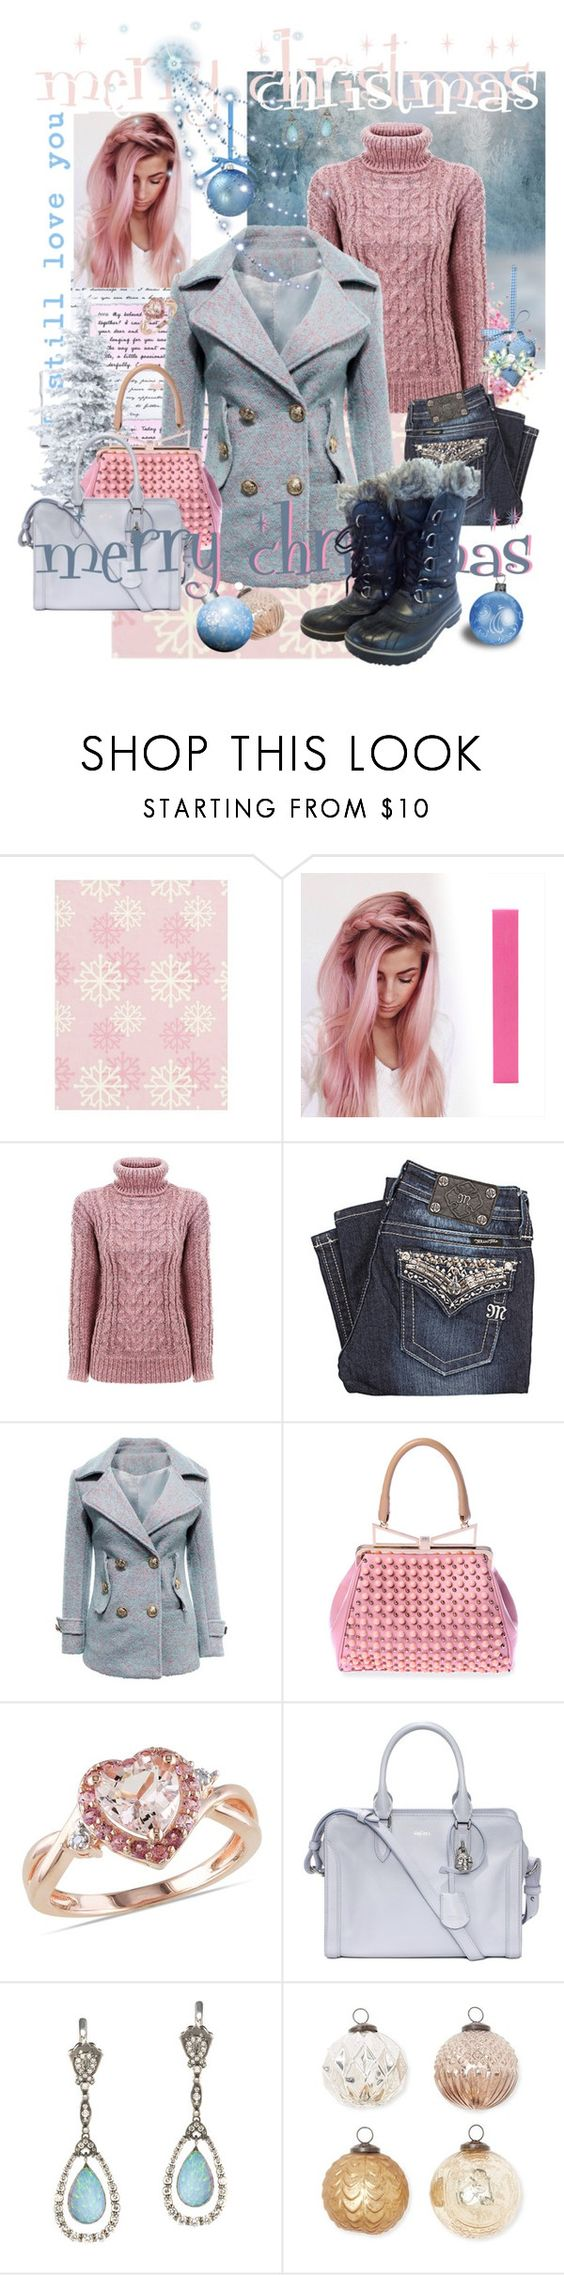 """""""the tingle of a beautiful frost"""" by nangaleema ❤ liked on Polyvore featuring Miss Me, Sara Battaglia, Alexander McQueen, Queensbee, Barreveld and SOREL"""